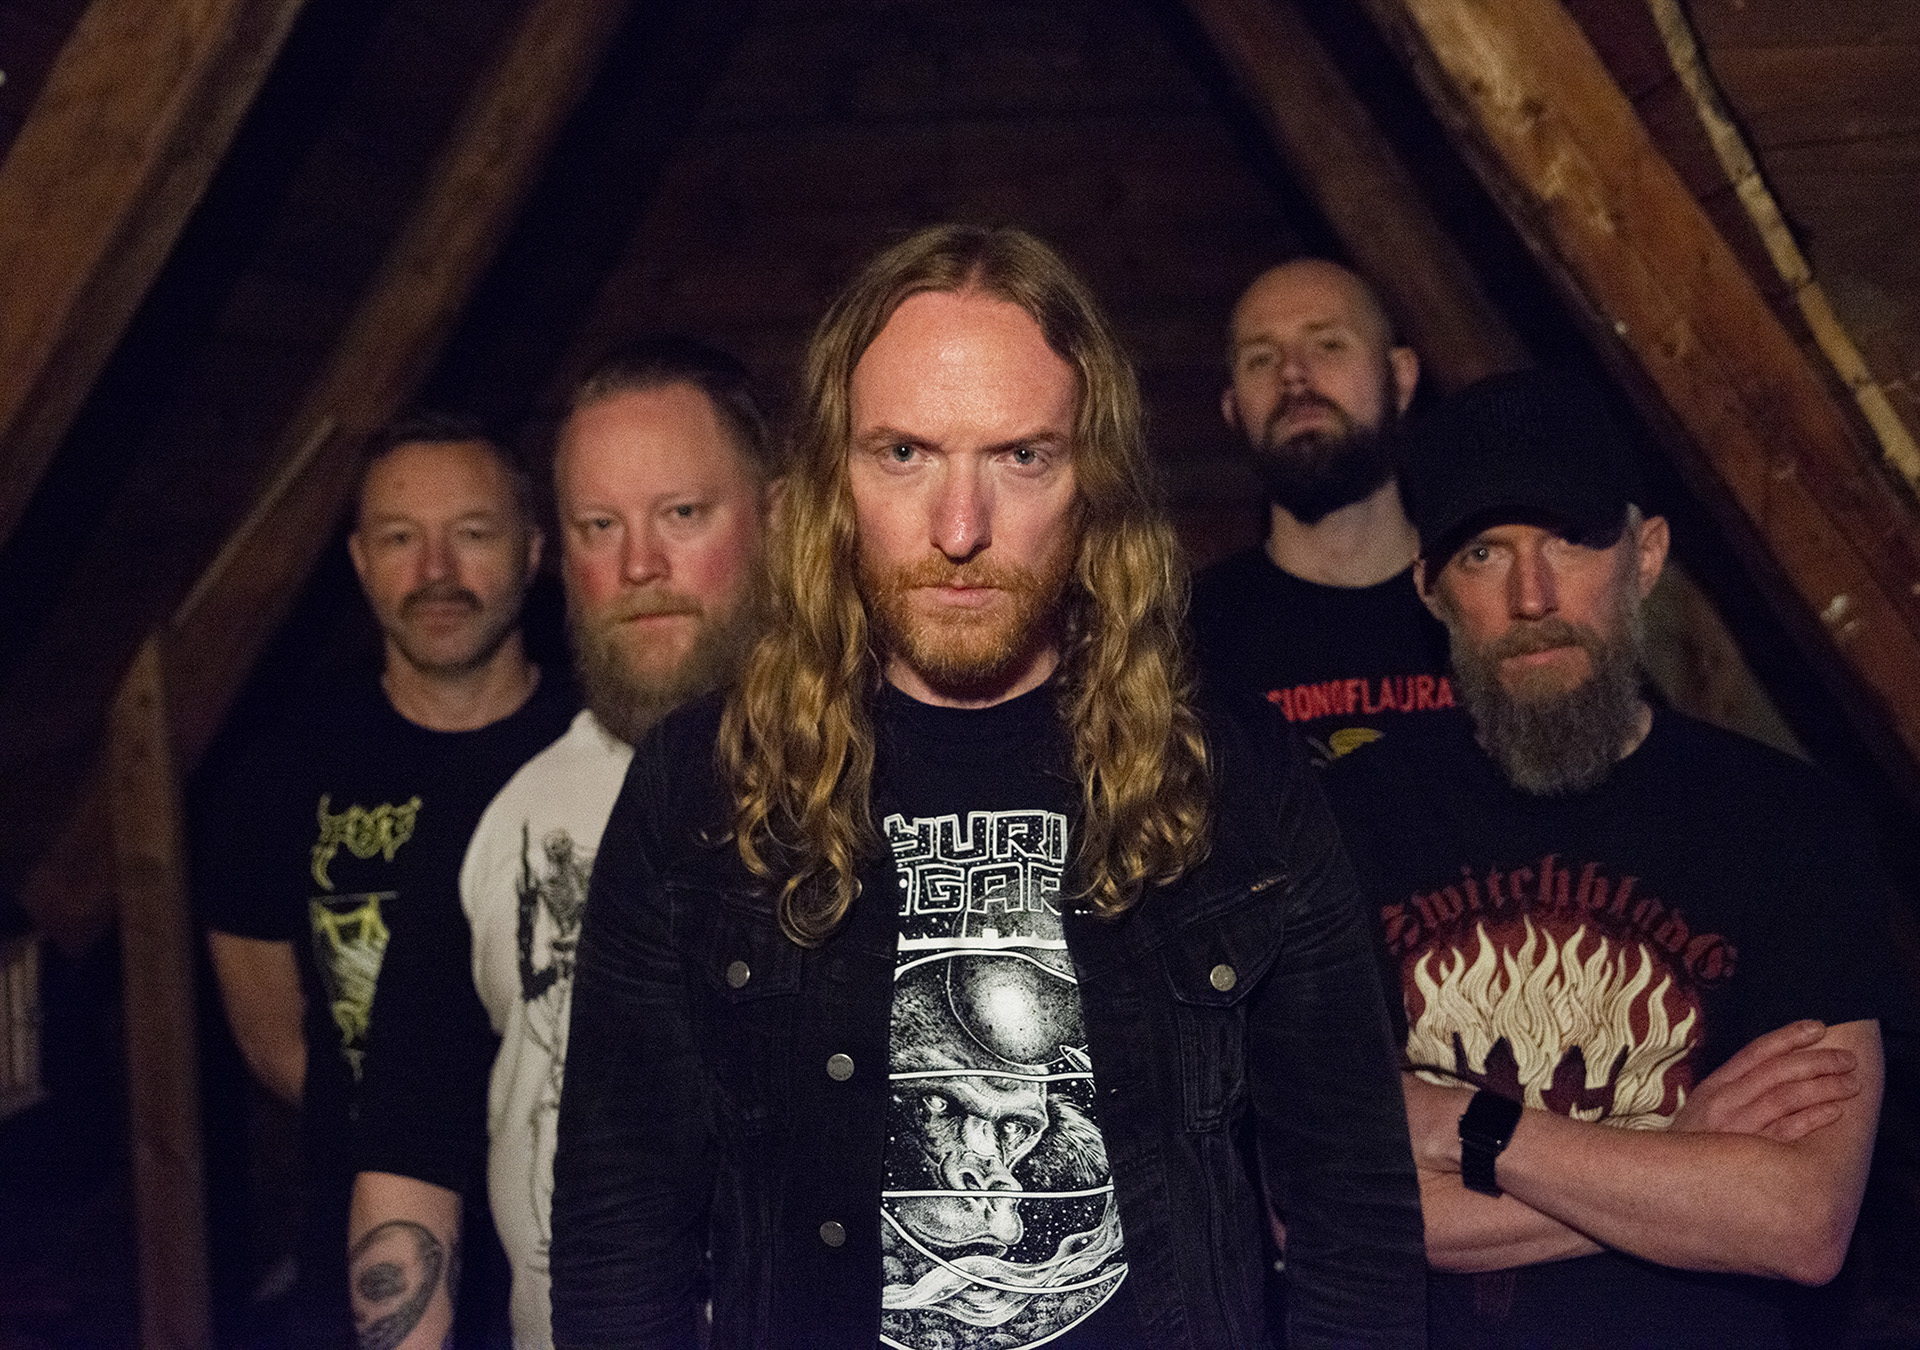 Swedish Death Metal Supergroup GRAND CADAVER Release New Single with METALSUCKS /// Debut Album Out this October